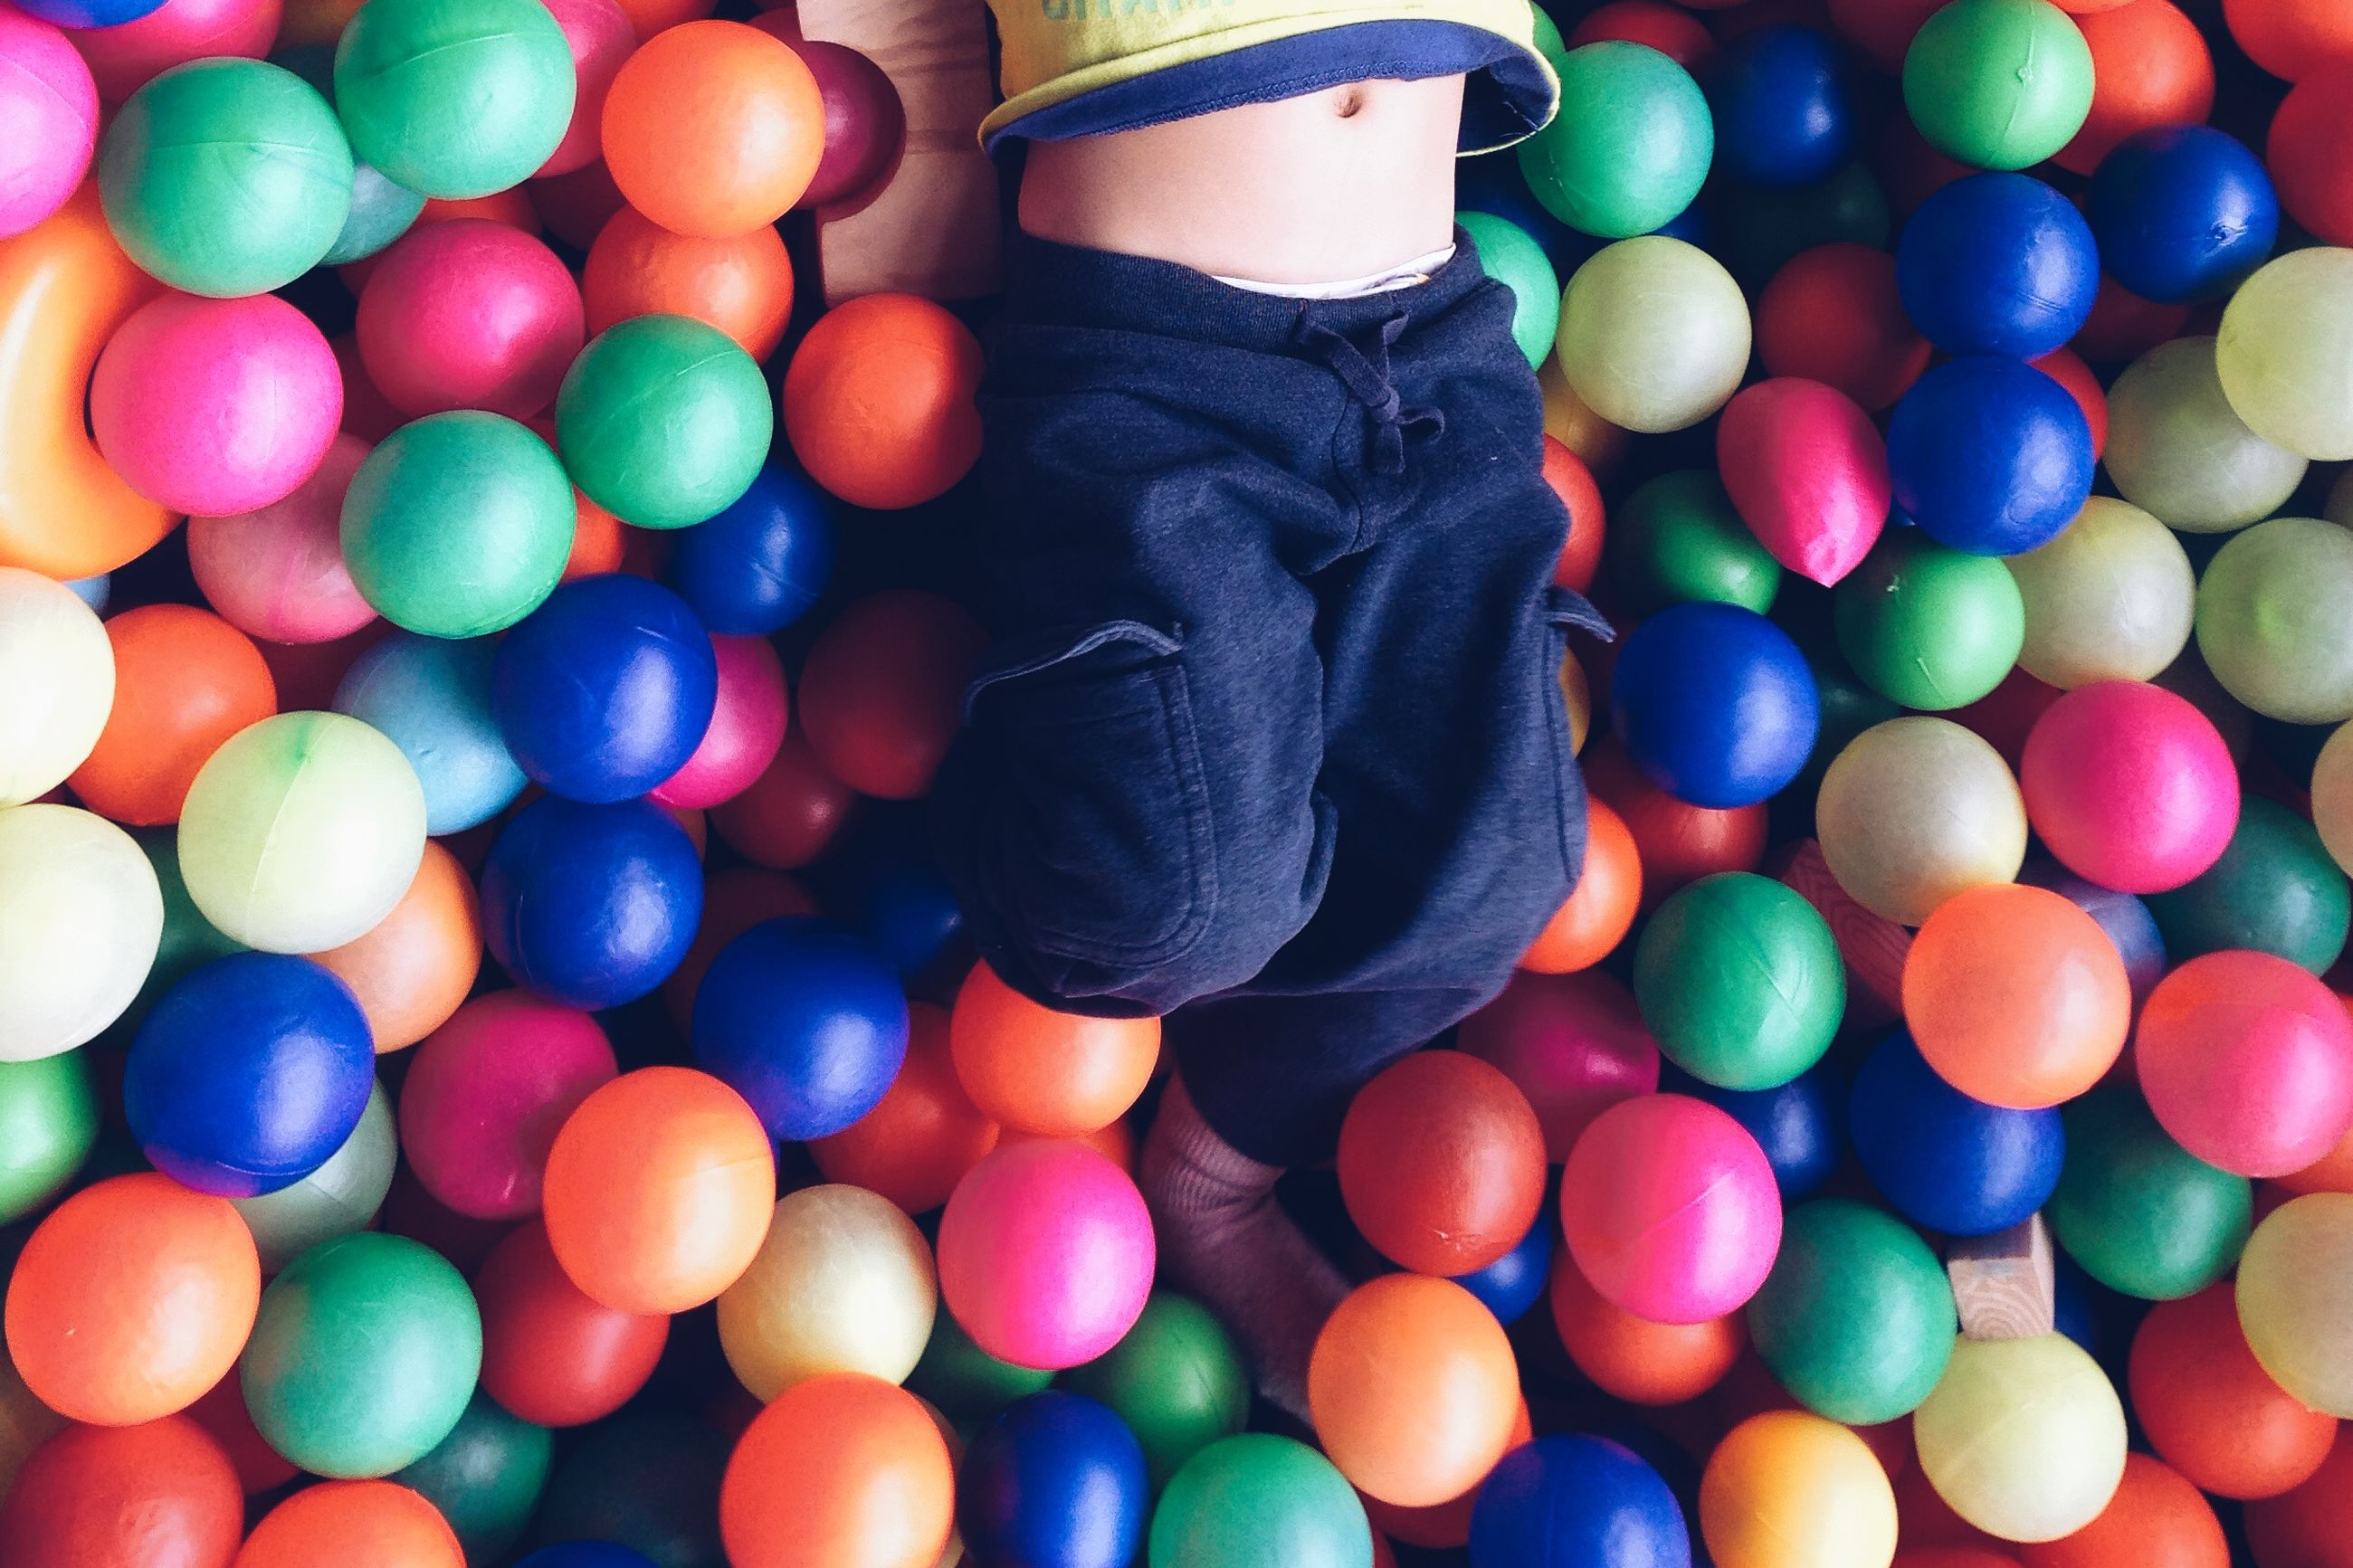 multi colored, abundance, full frame, large group of objects, backgrounds, colorful, variation, indoors, ball, still life, choice, close-up, celebration, high angle view, blue, sphere, balloon, candy, pattern, childhood